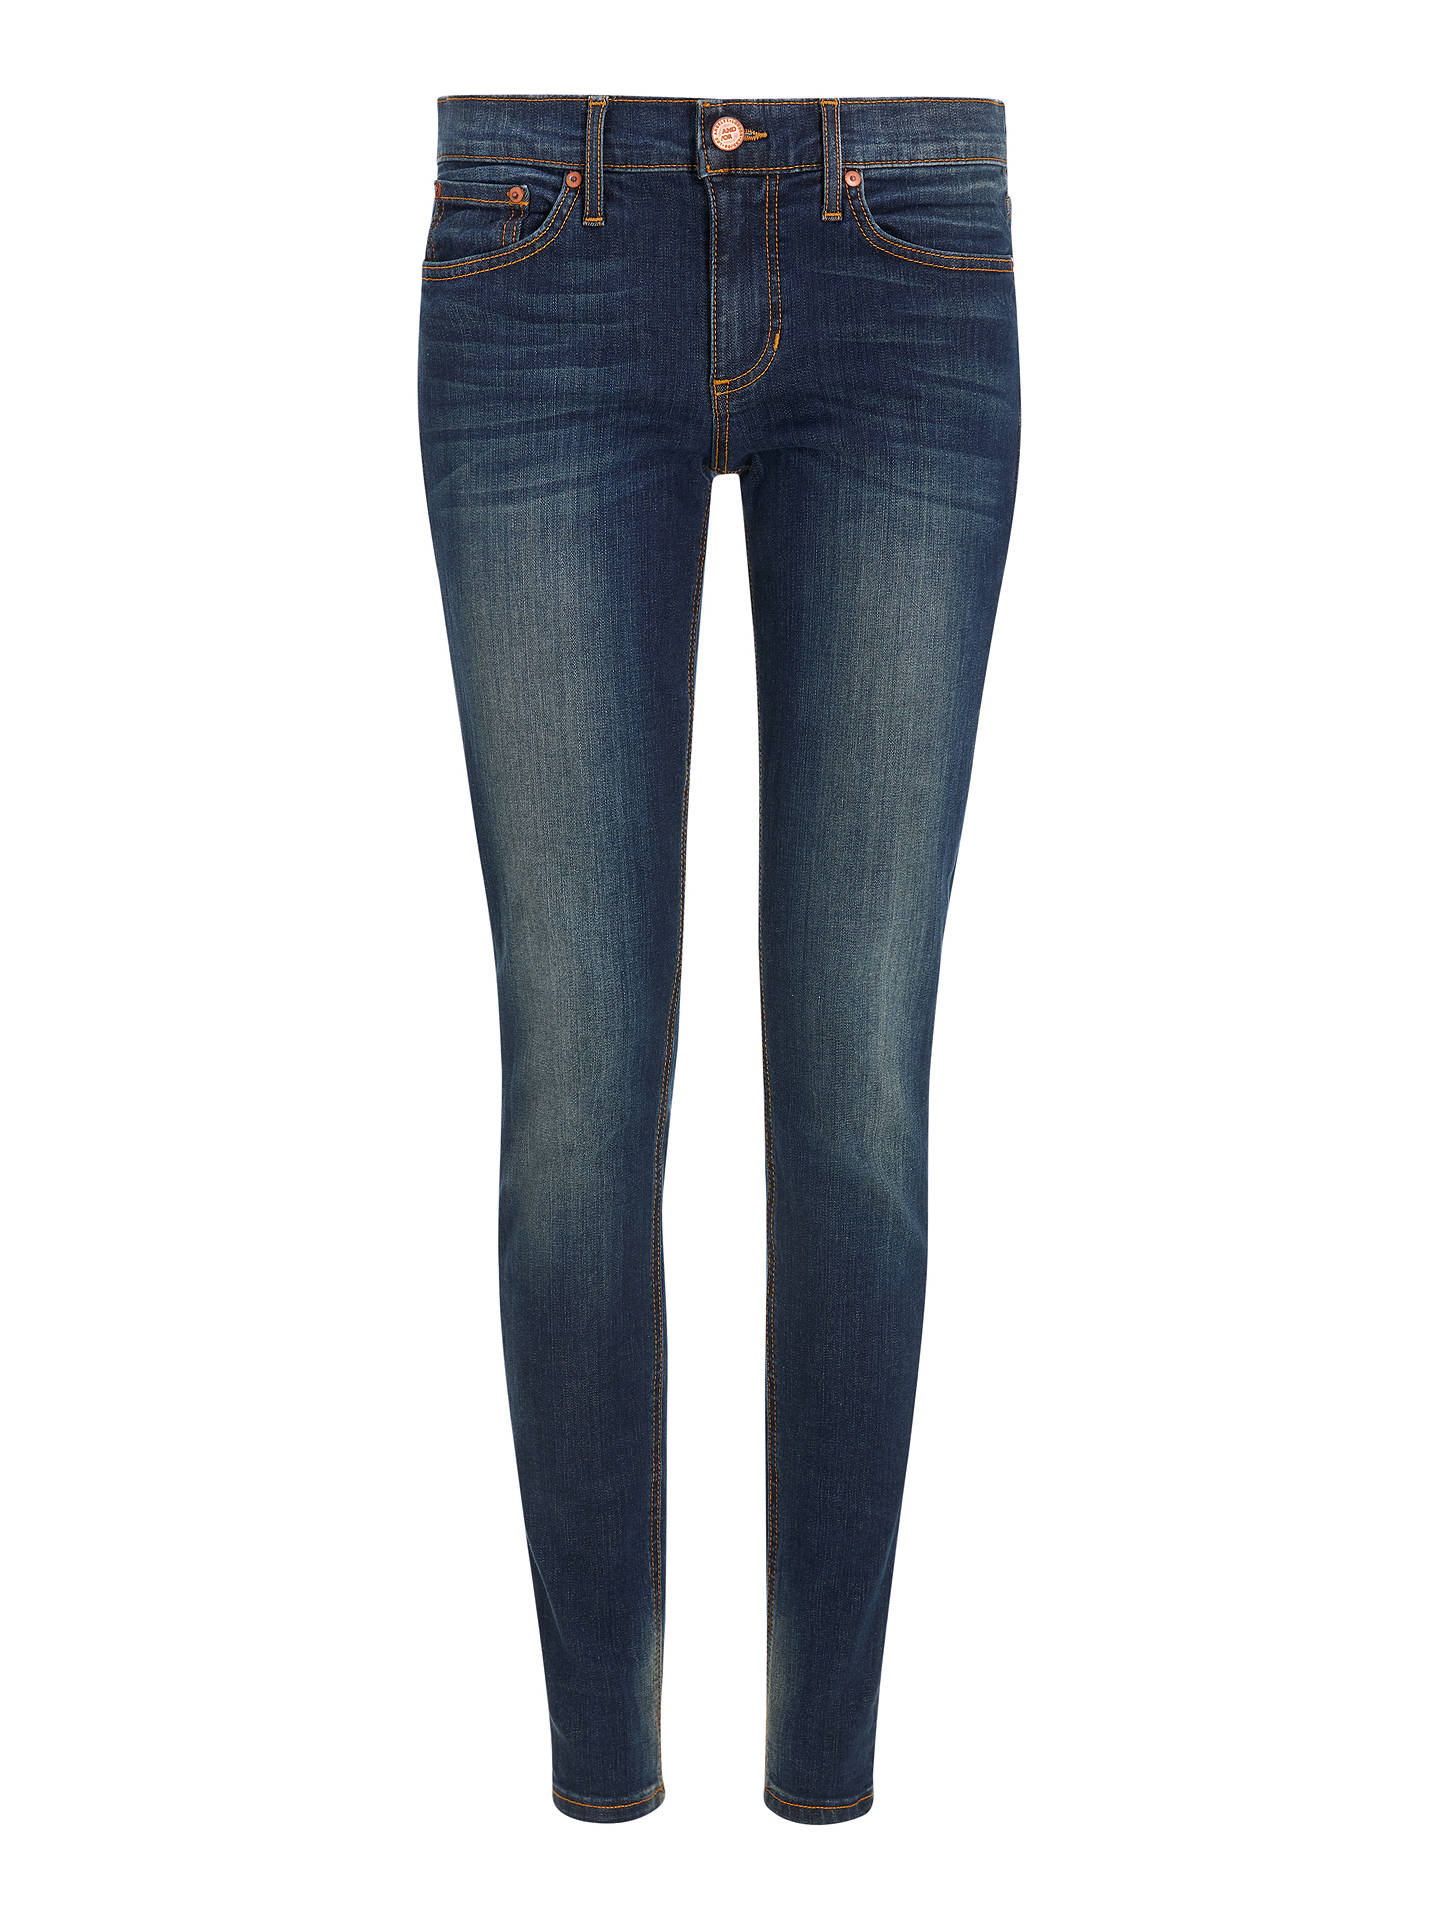 Buy AND/OR Abbot Kinney Skinny Jeans, Deja Blue, 26R Online at johnlewis.com